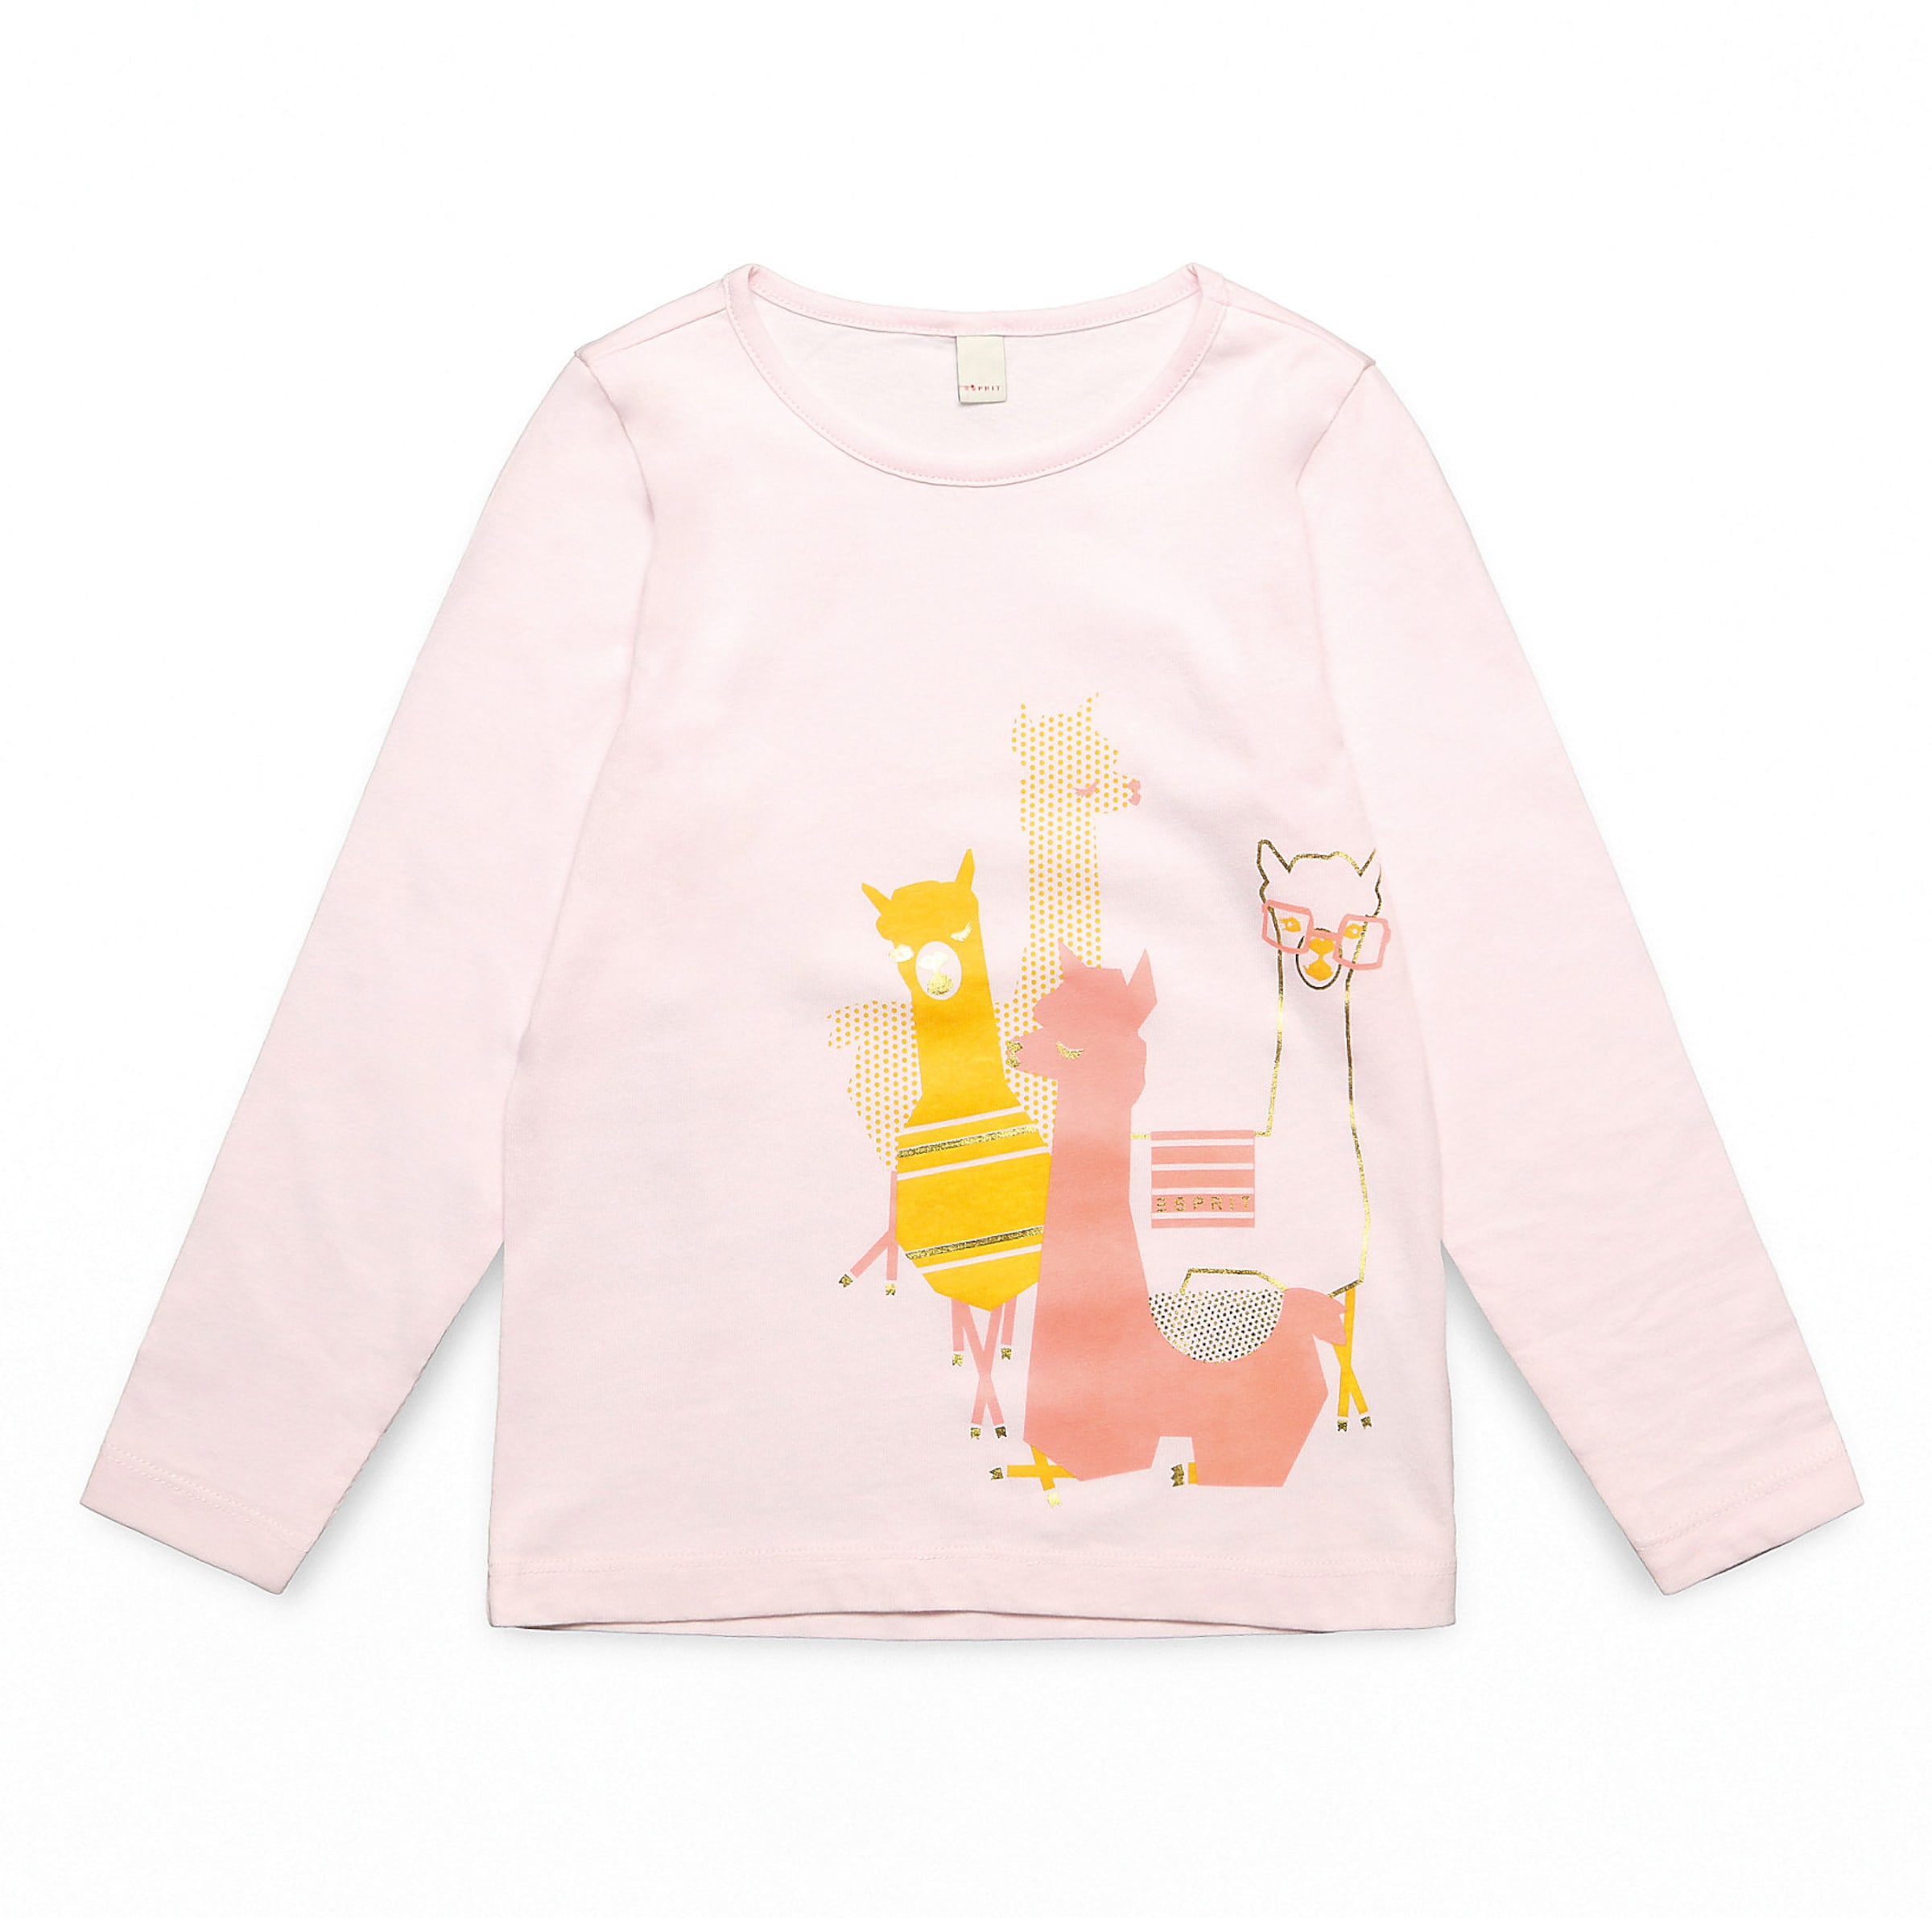 Kinder,  Mädchen,  Kinder Esprit Shirt braun, gold,  orange,  pink, khaki | 03663760992540